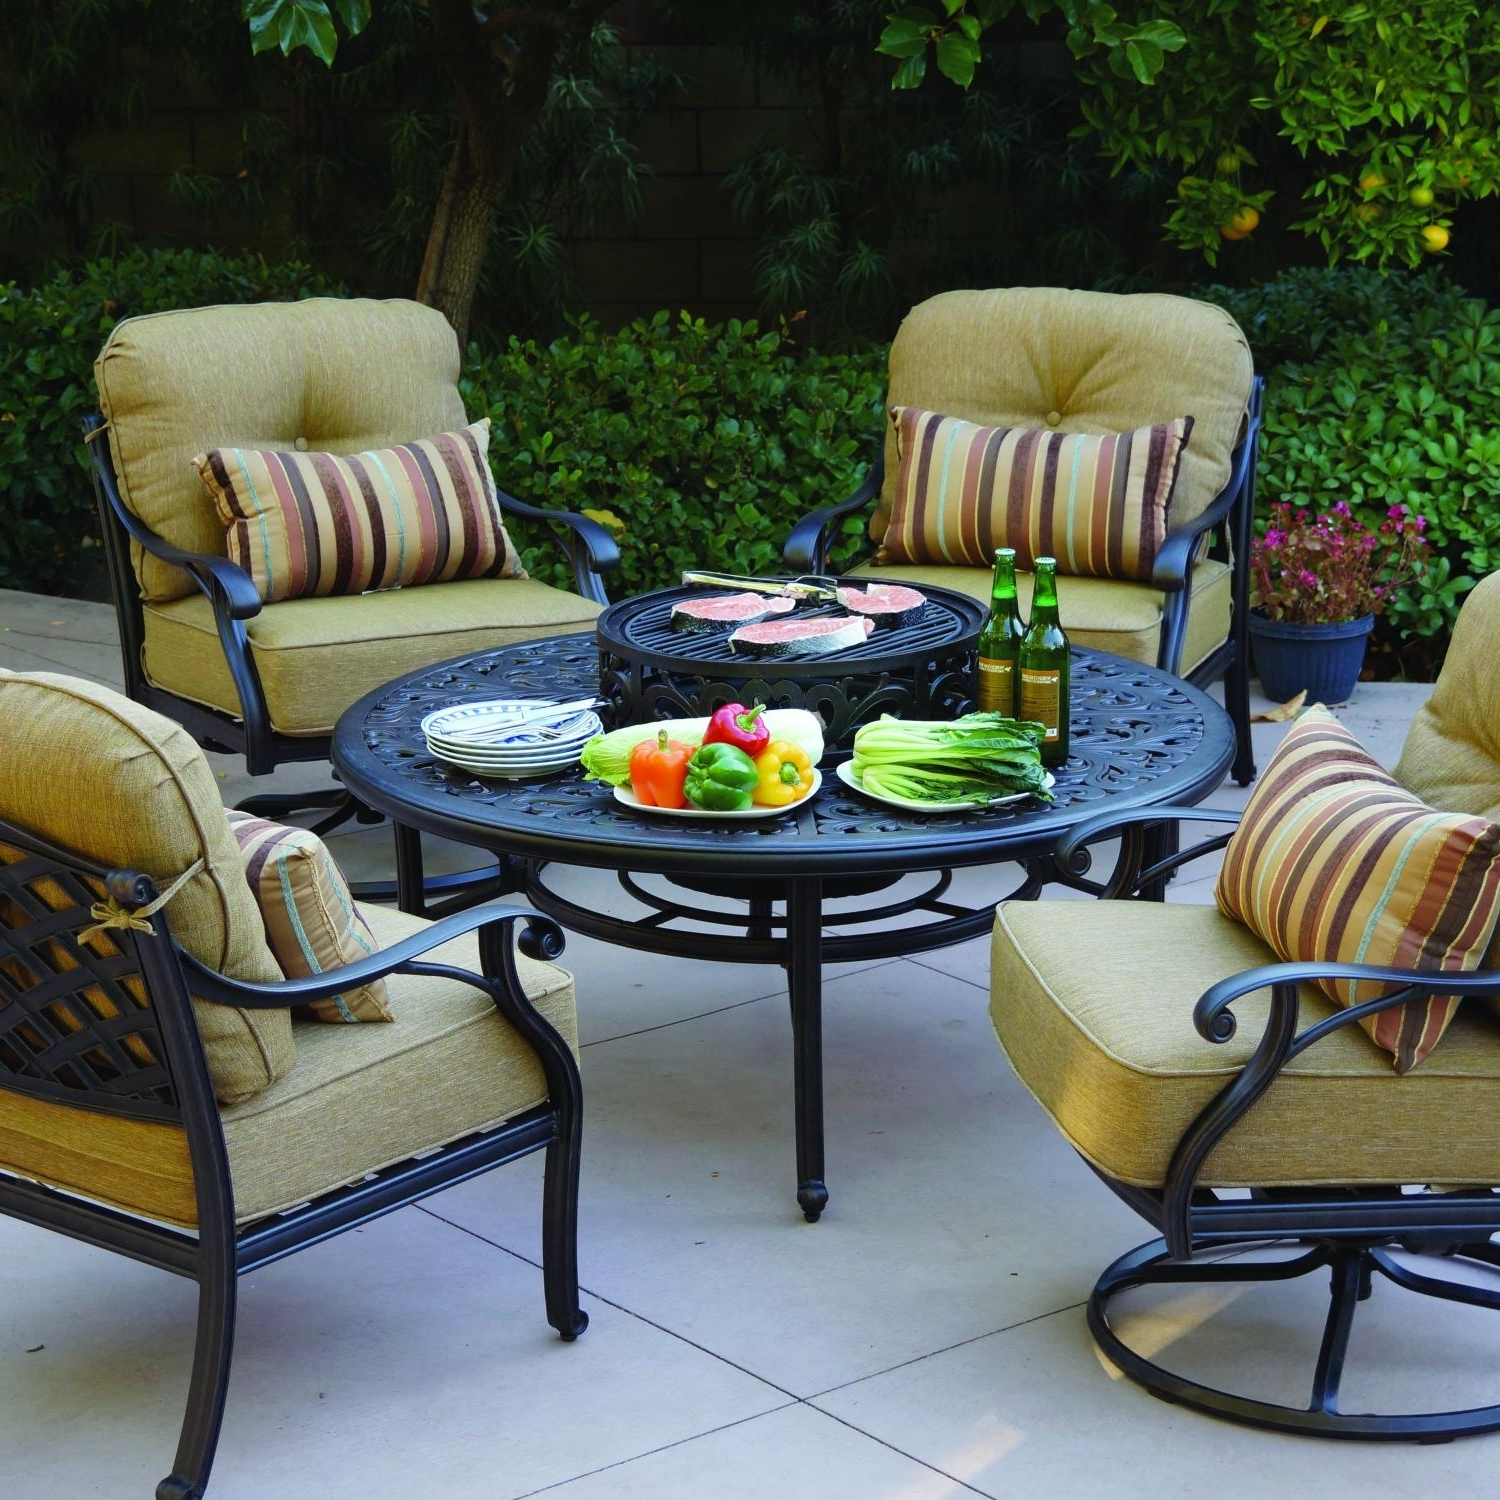 Trendy Patio Furniture Conversation Sets With Fire Pit With Regard To Darlee Nassau 5 Piece Patio Fire Pit Conversation Seating Set (View 15 of 15)